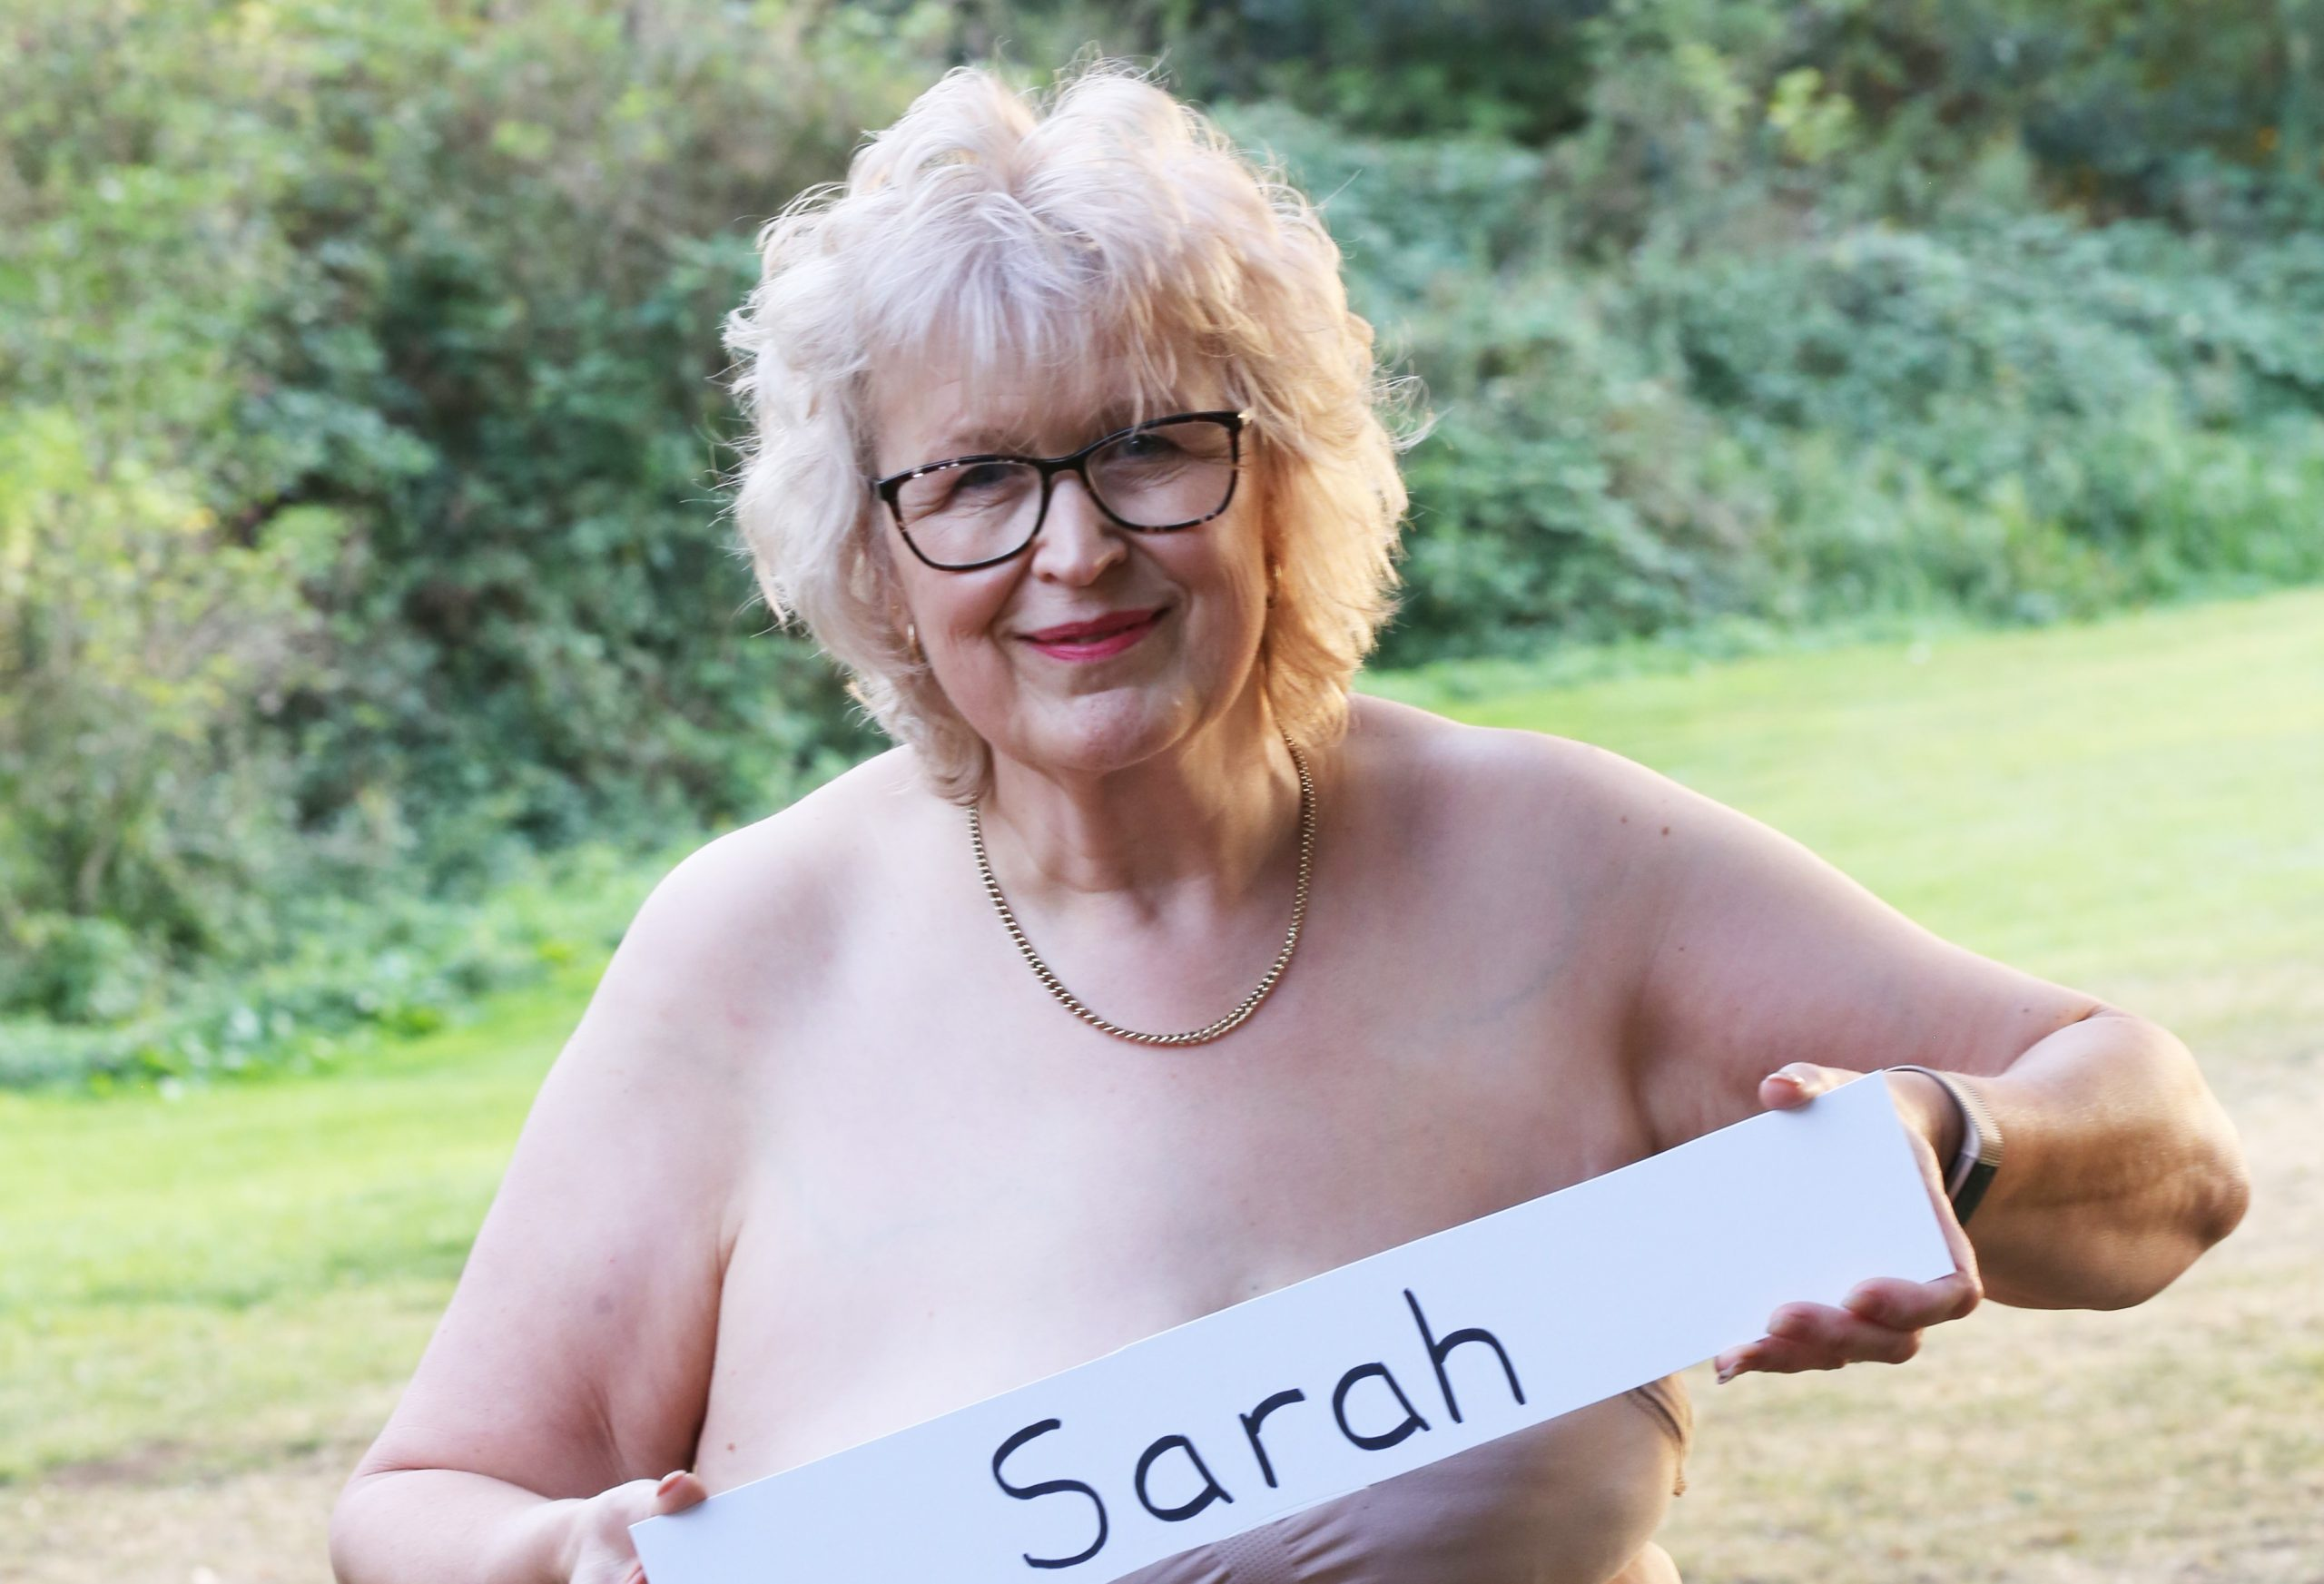 A picture of Sarah Cooke taken during our calendar shoot.